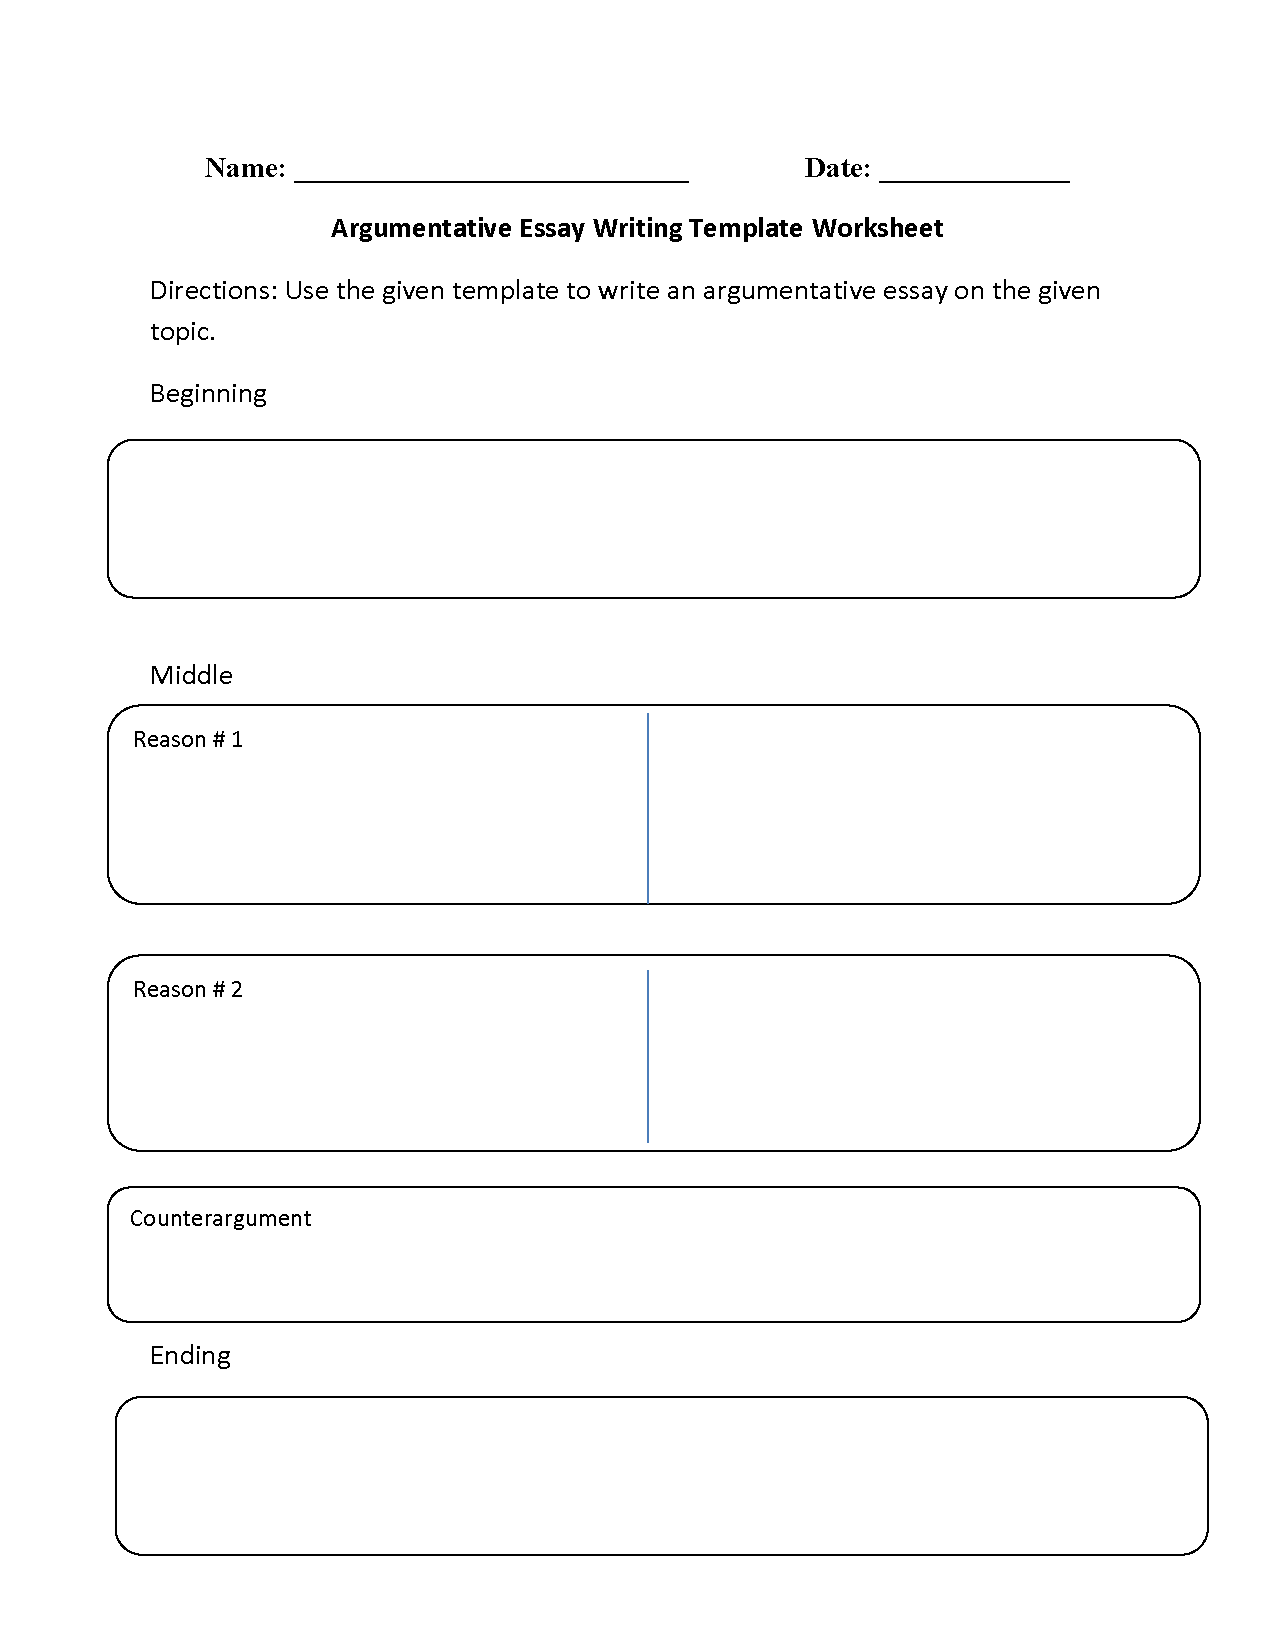 argumentative essay writing template worksheet - Example Of Argumentative Essays